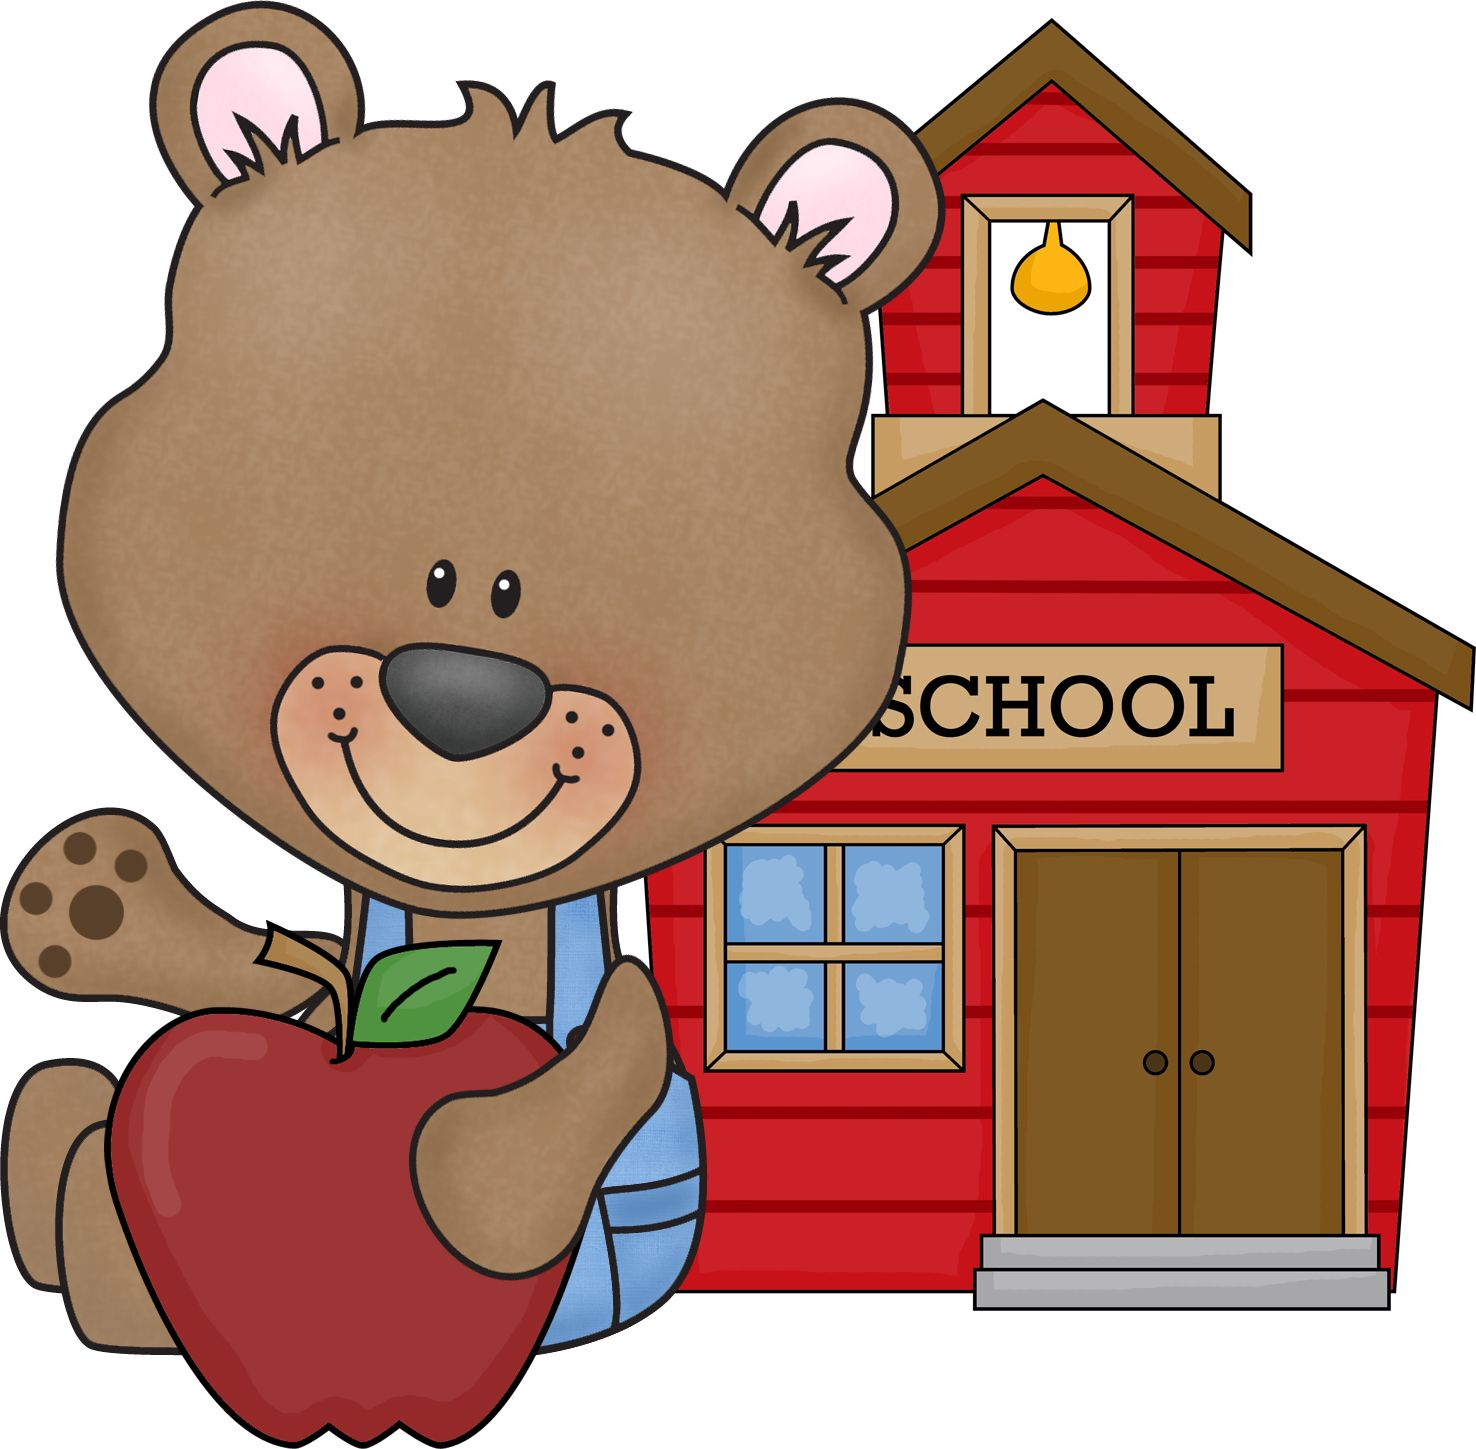 school bear | clip art - school - clipart | pinterest | school